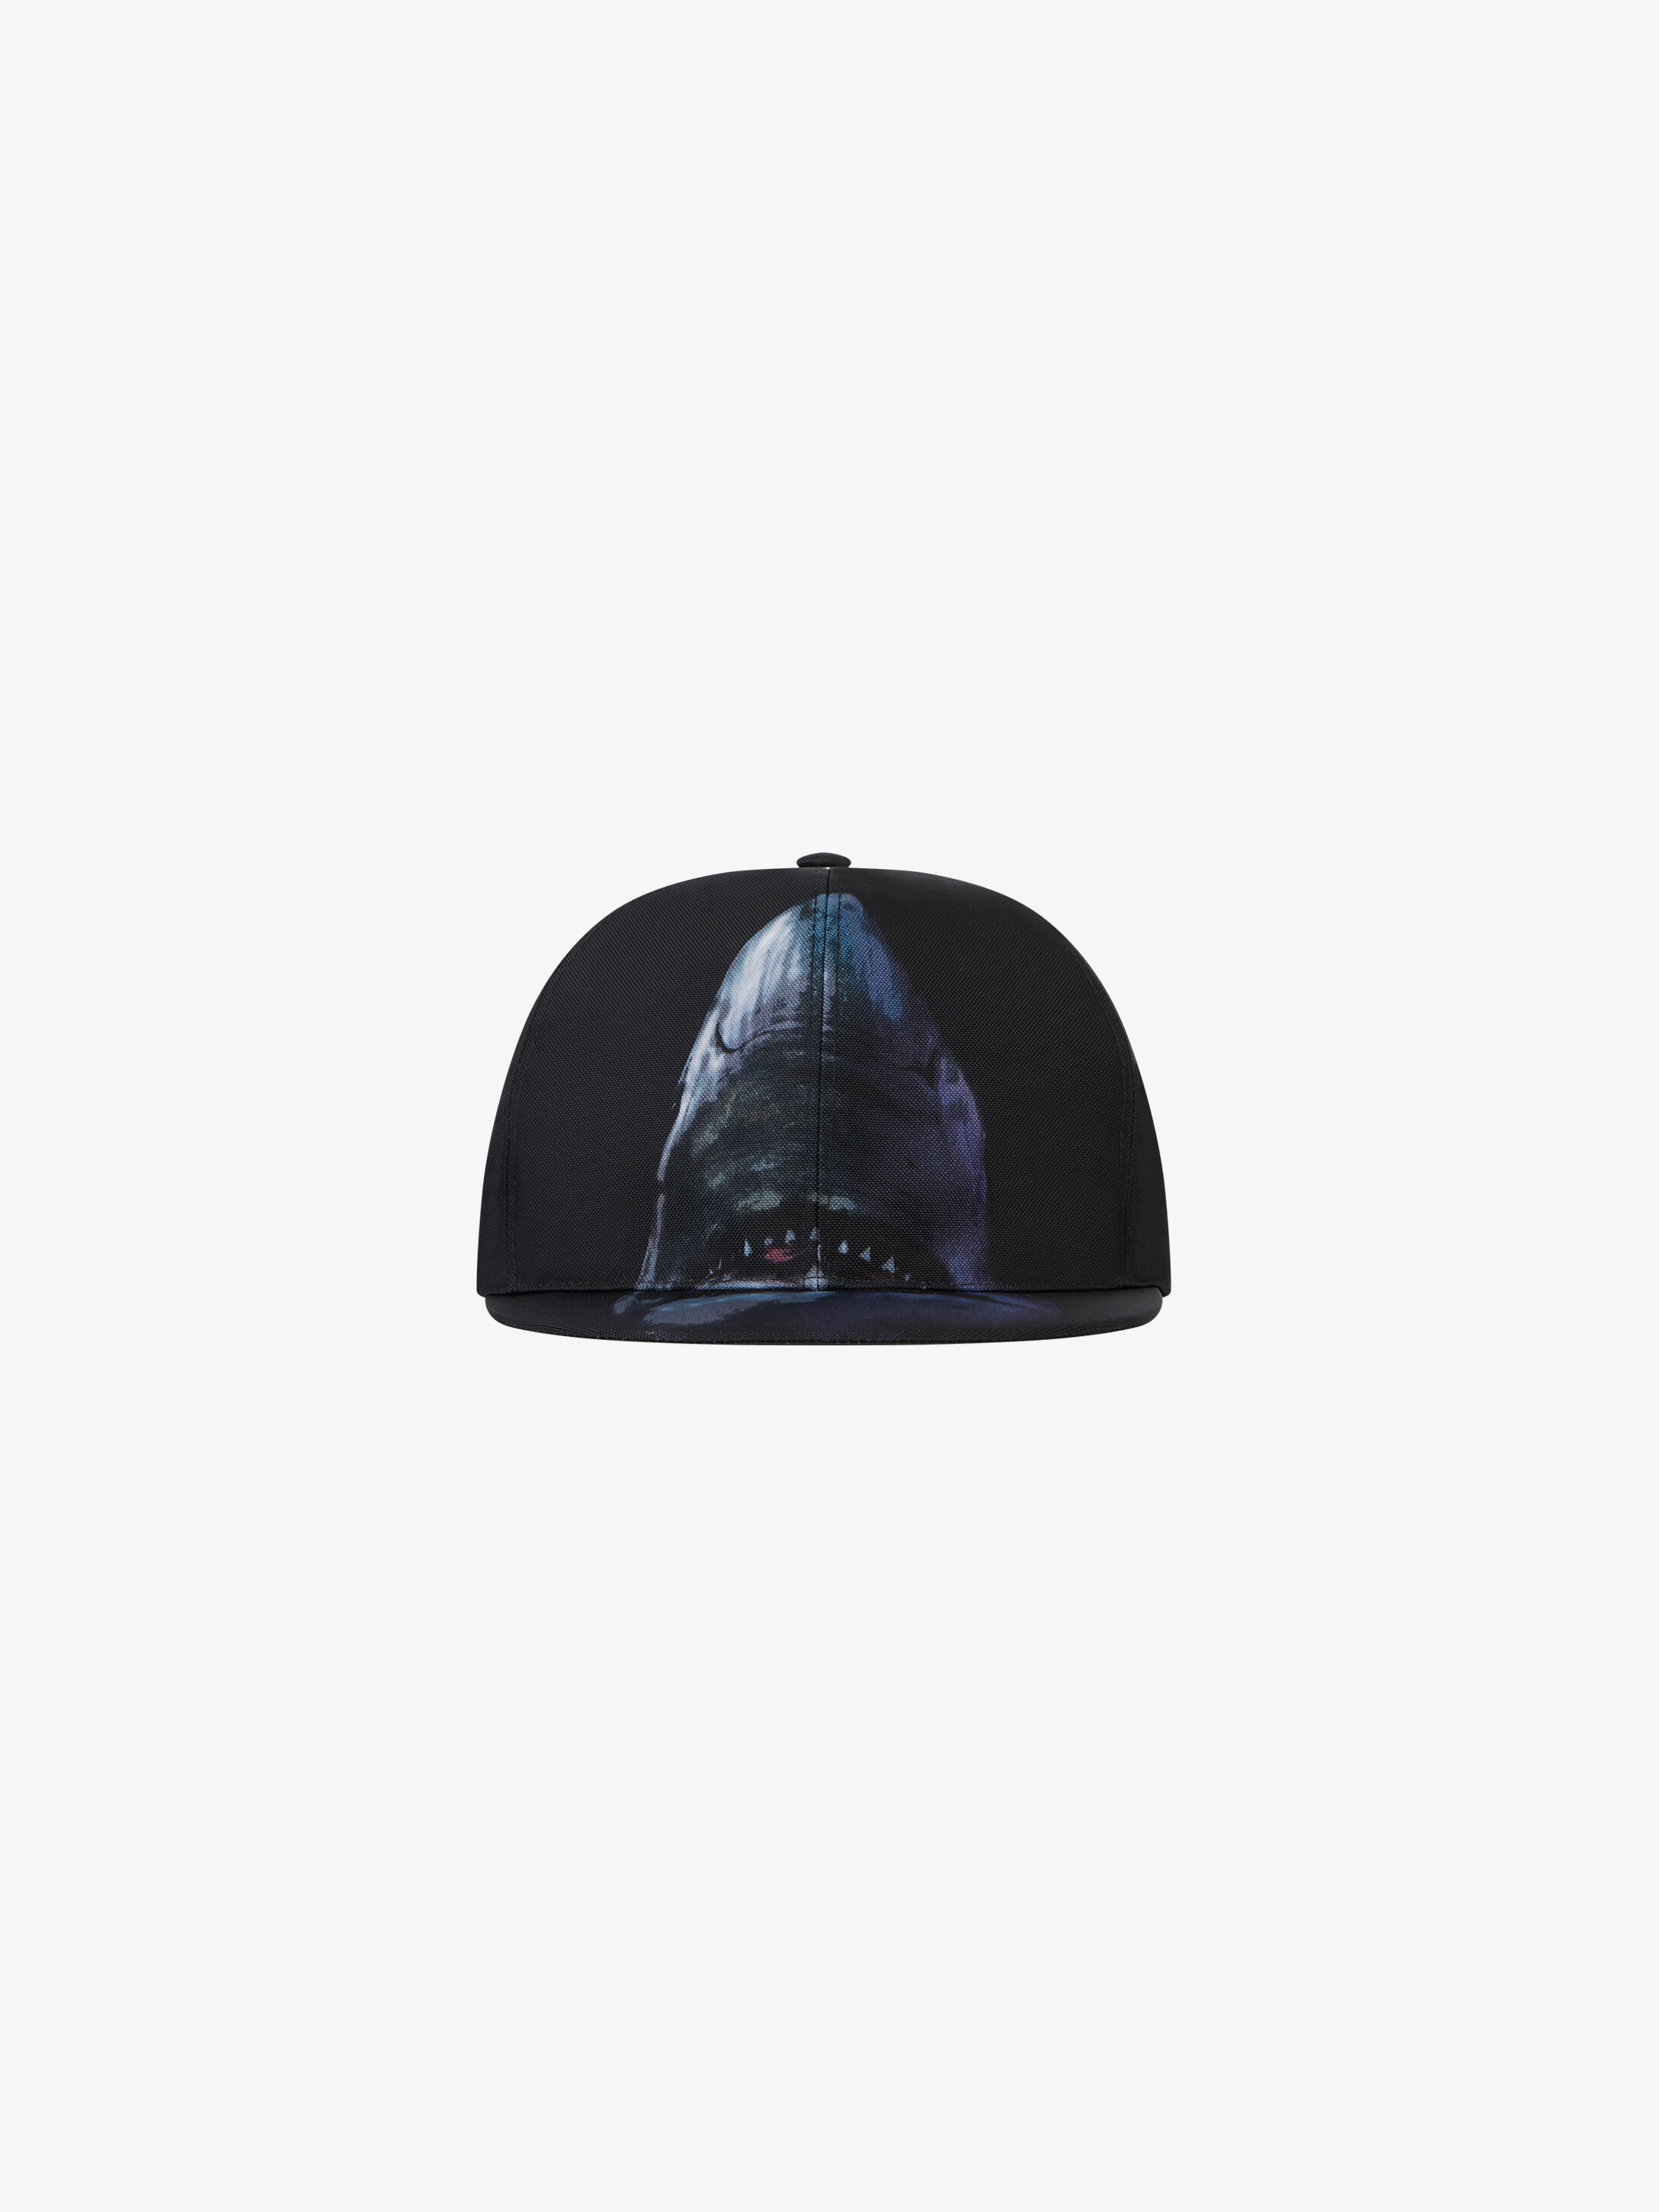 bbf2c3432 Men's Bonnets and Caps collection by Givenchy. | GIVENCHY Paris